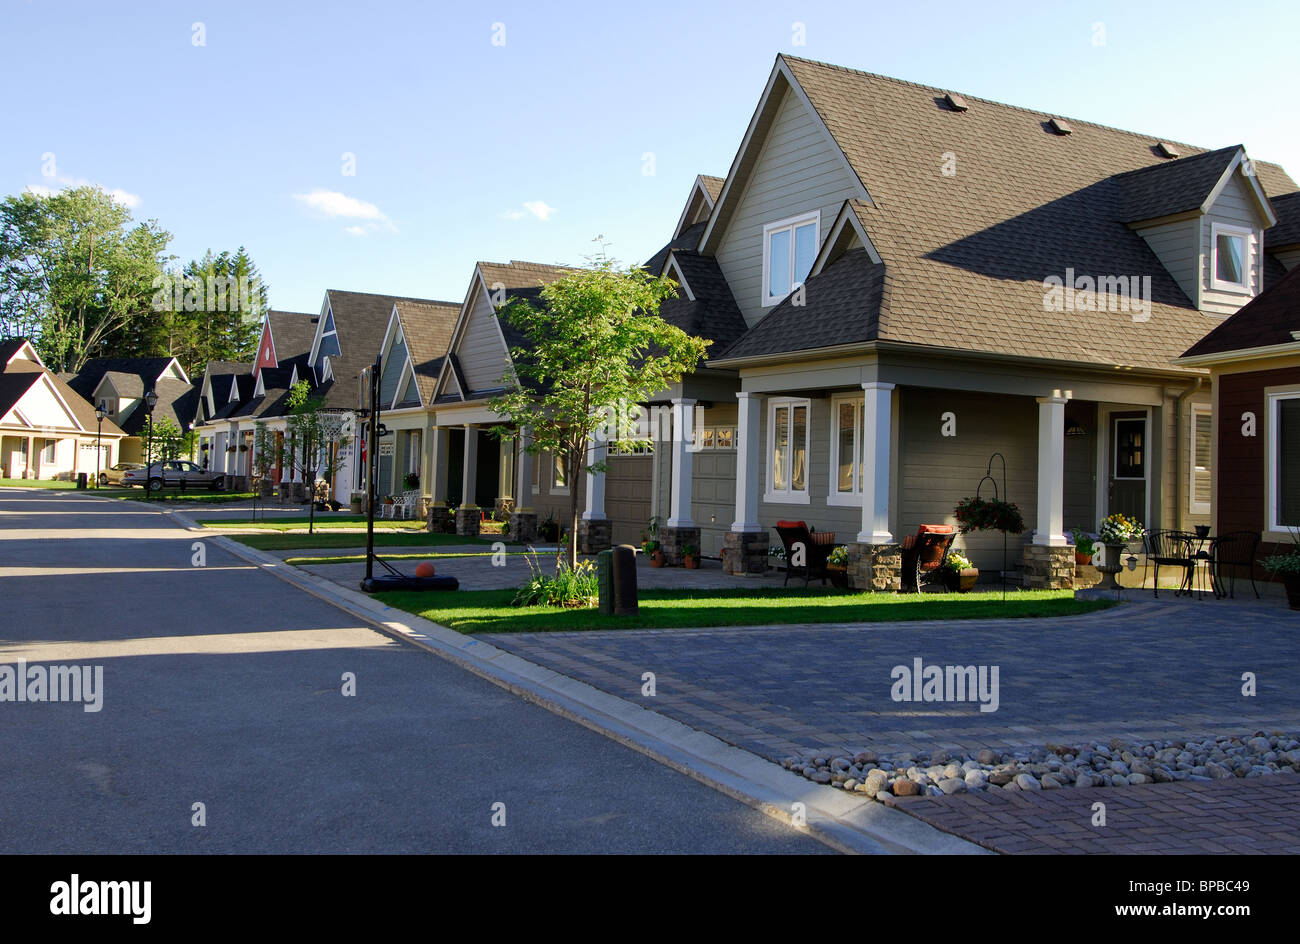 Awesome 60 modern homes in america inspiration design of for Craftsman style homes for sale in boise idaho